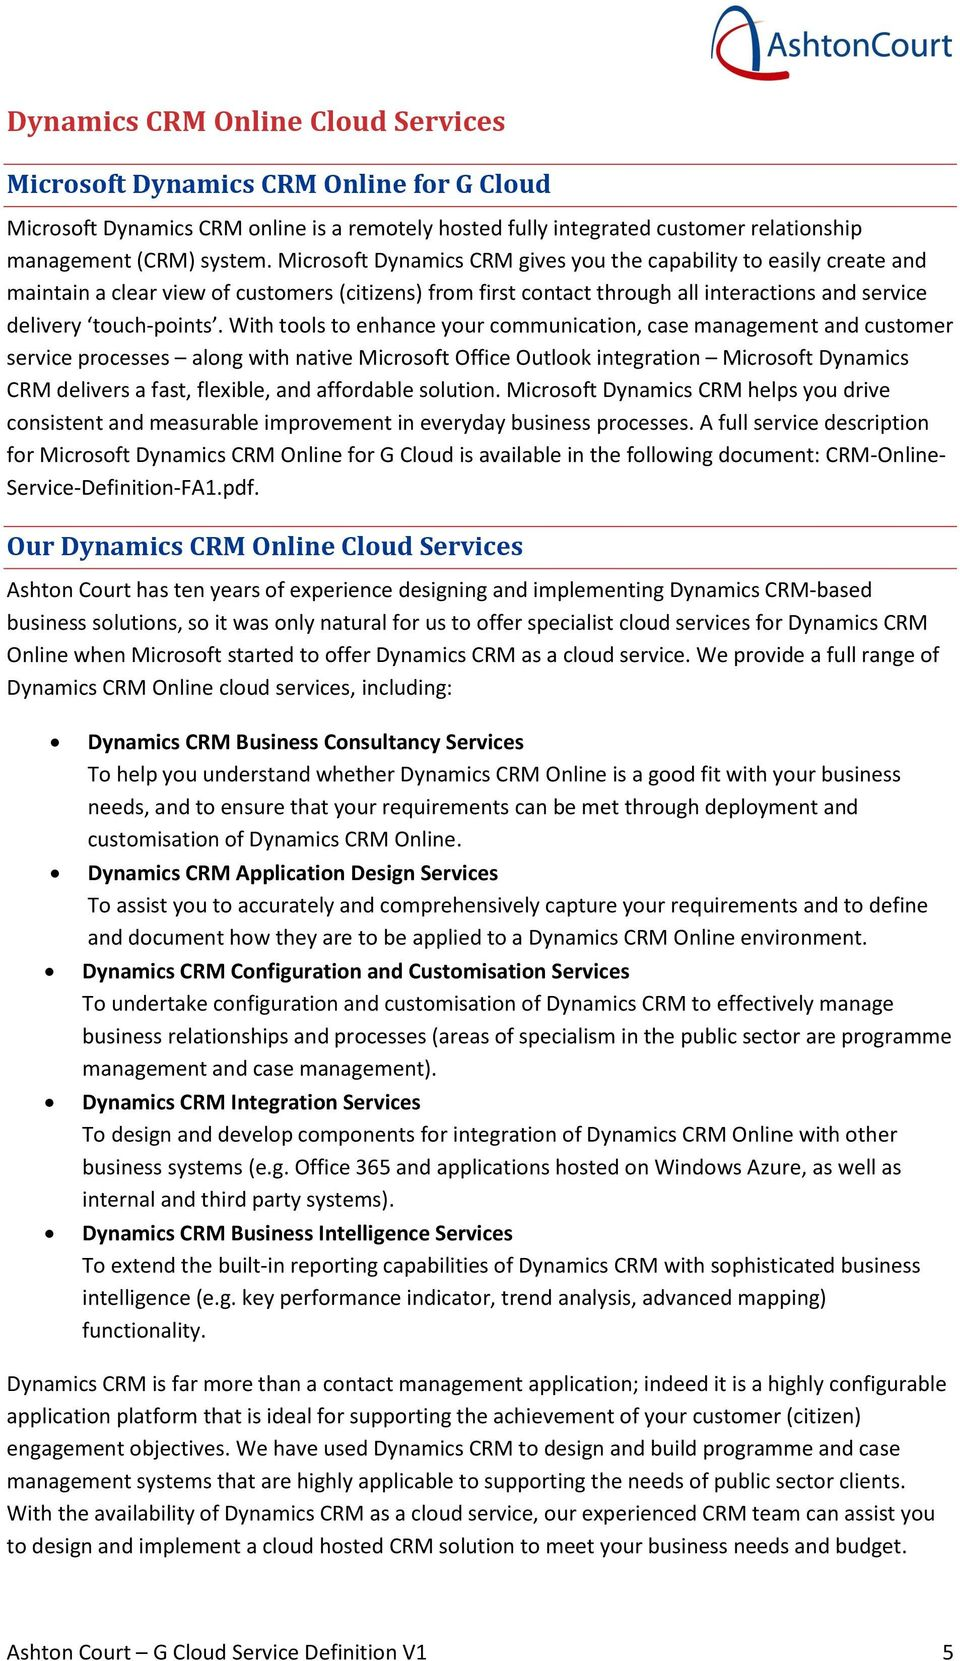 With tools to enhance your communication, case management and customer service processes along with native Microsoft Office Outlook integration Microsoft Dynamics CRM delivers a fast, flexible, and